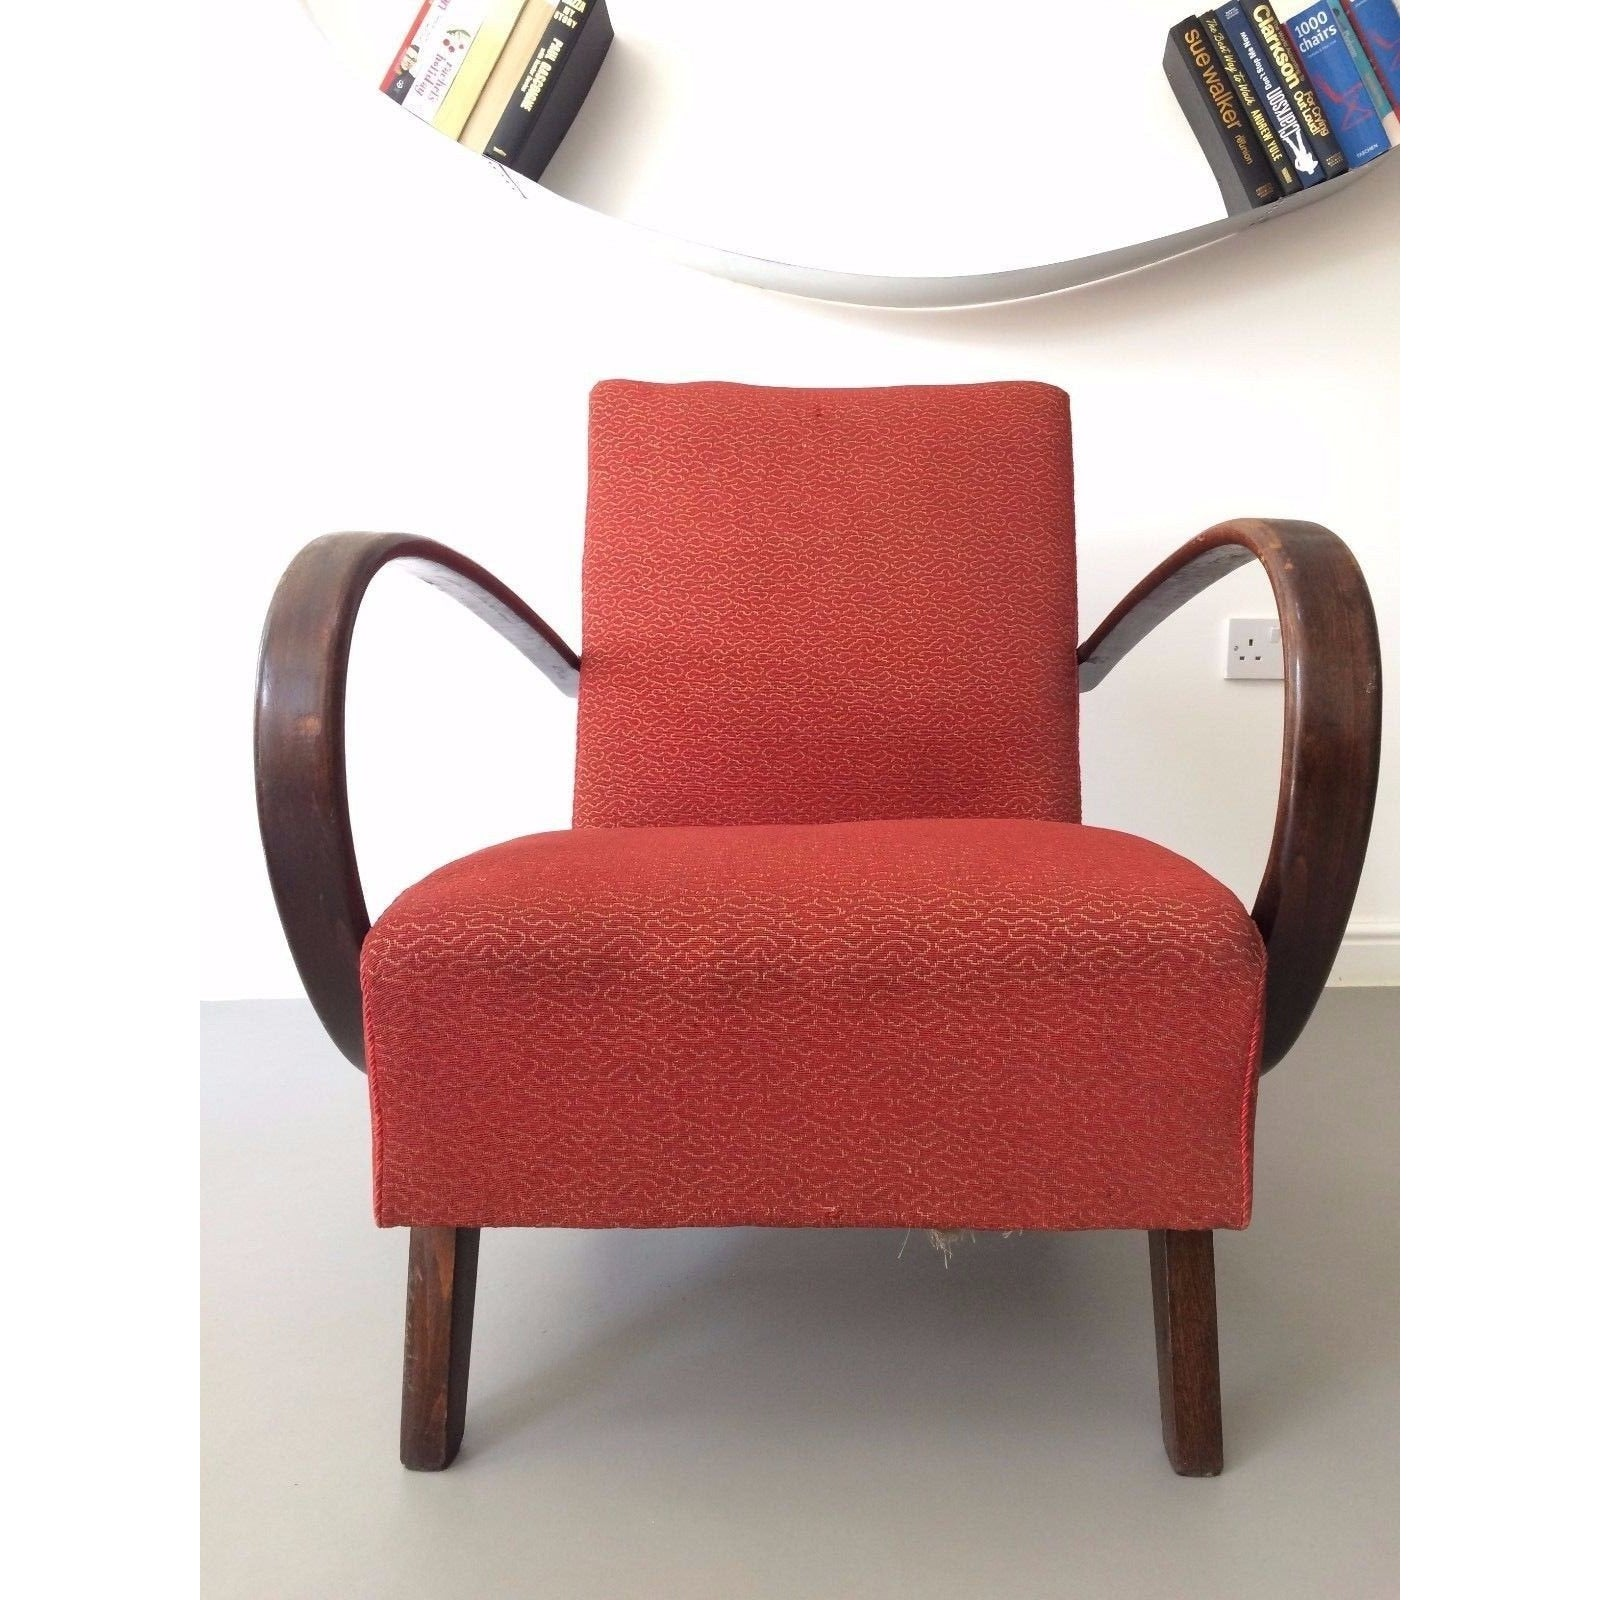 bentwood chairs Second Hand Household Furniture Buy and Sell in